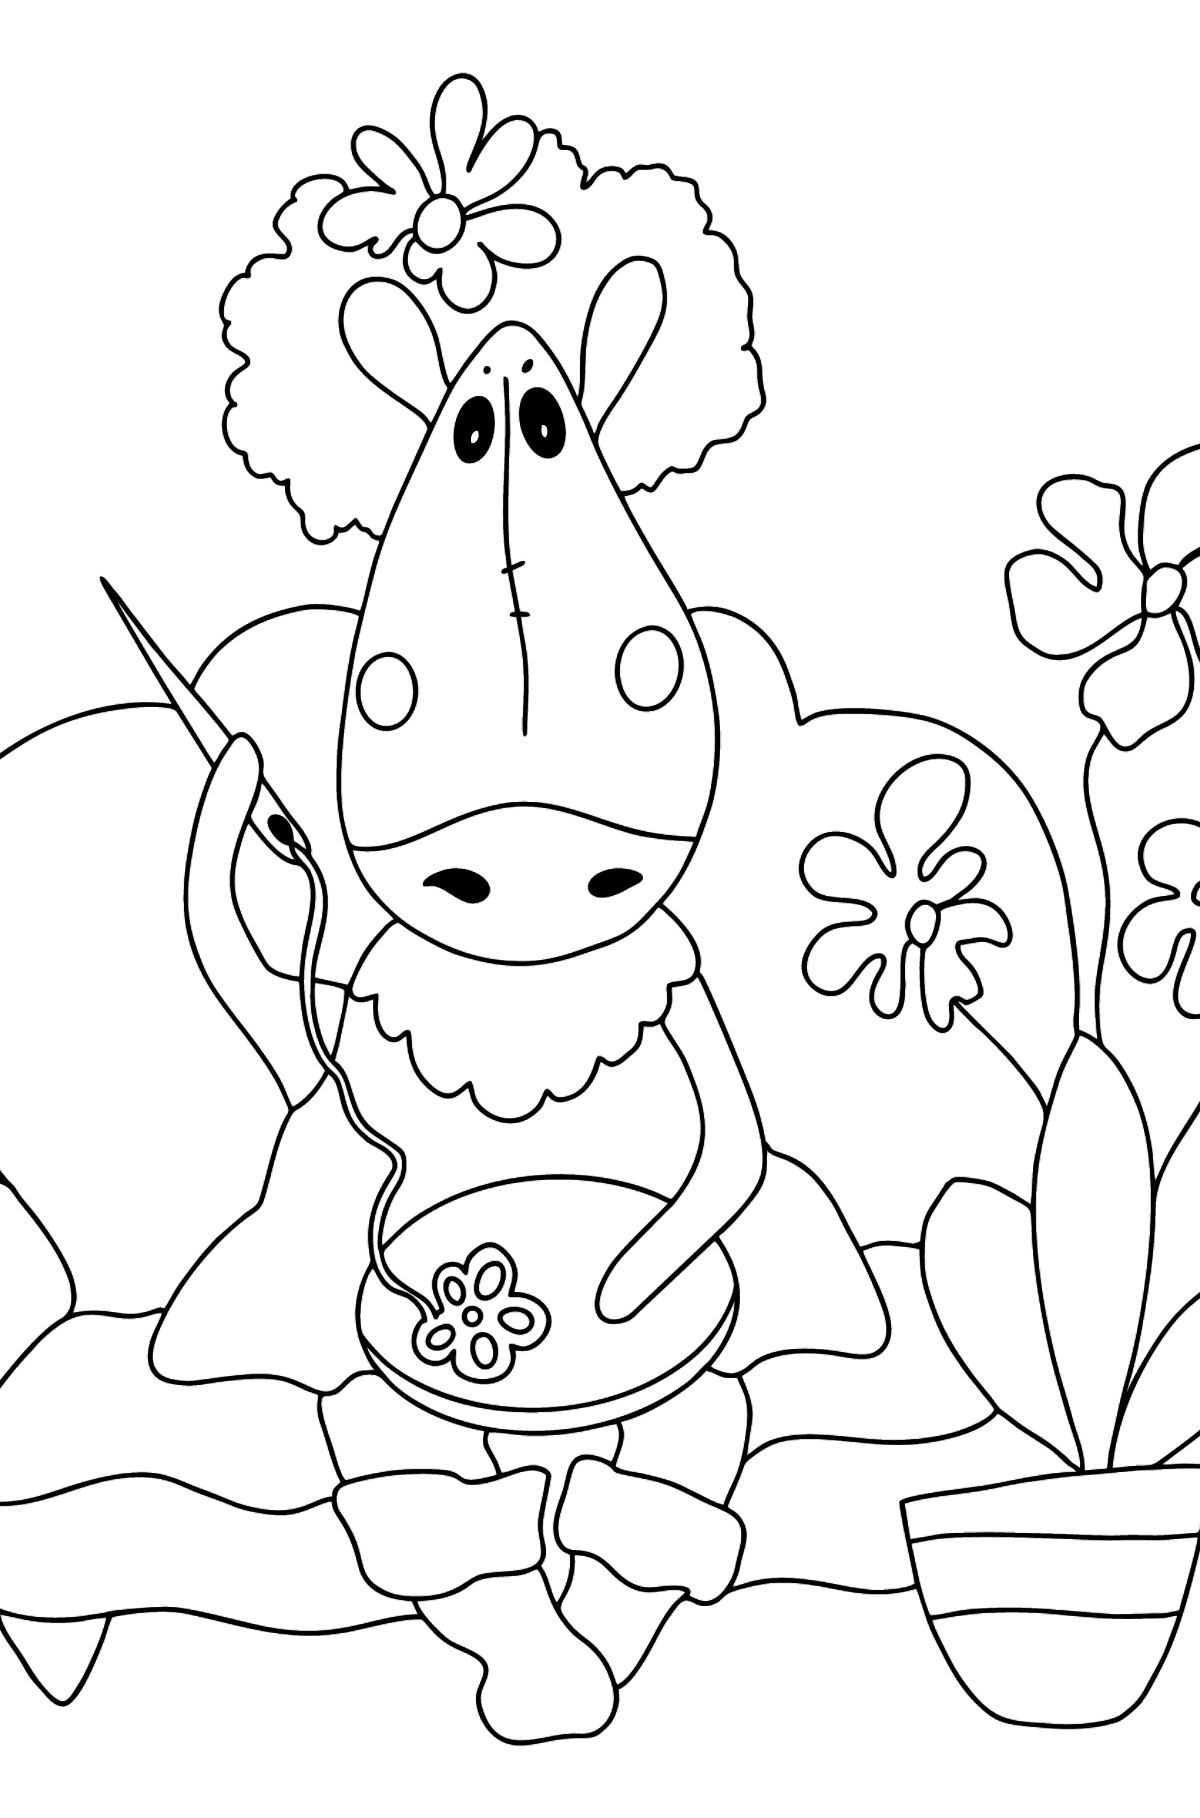 Difficult coloring pafe a horse on the sofa - Coloring Pages for Kids